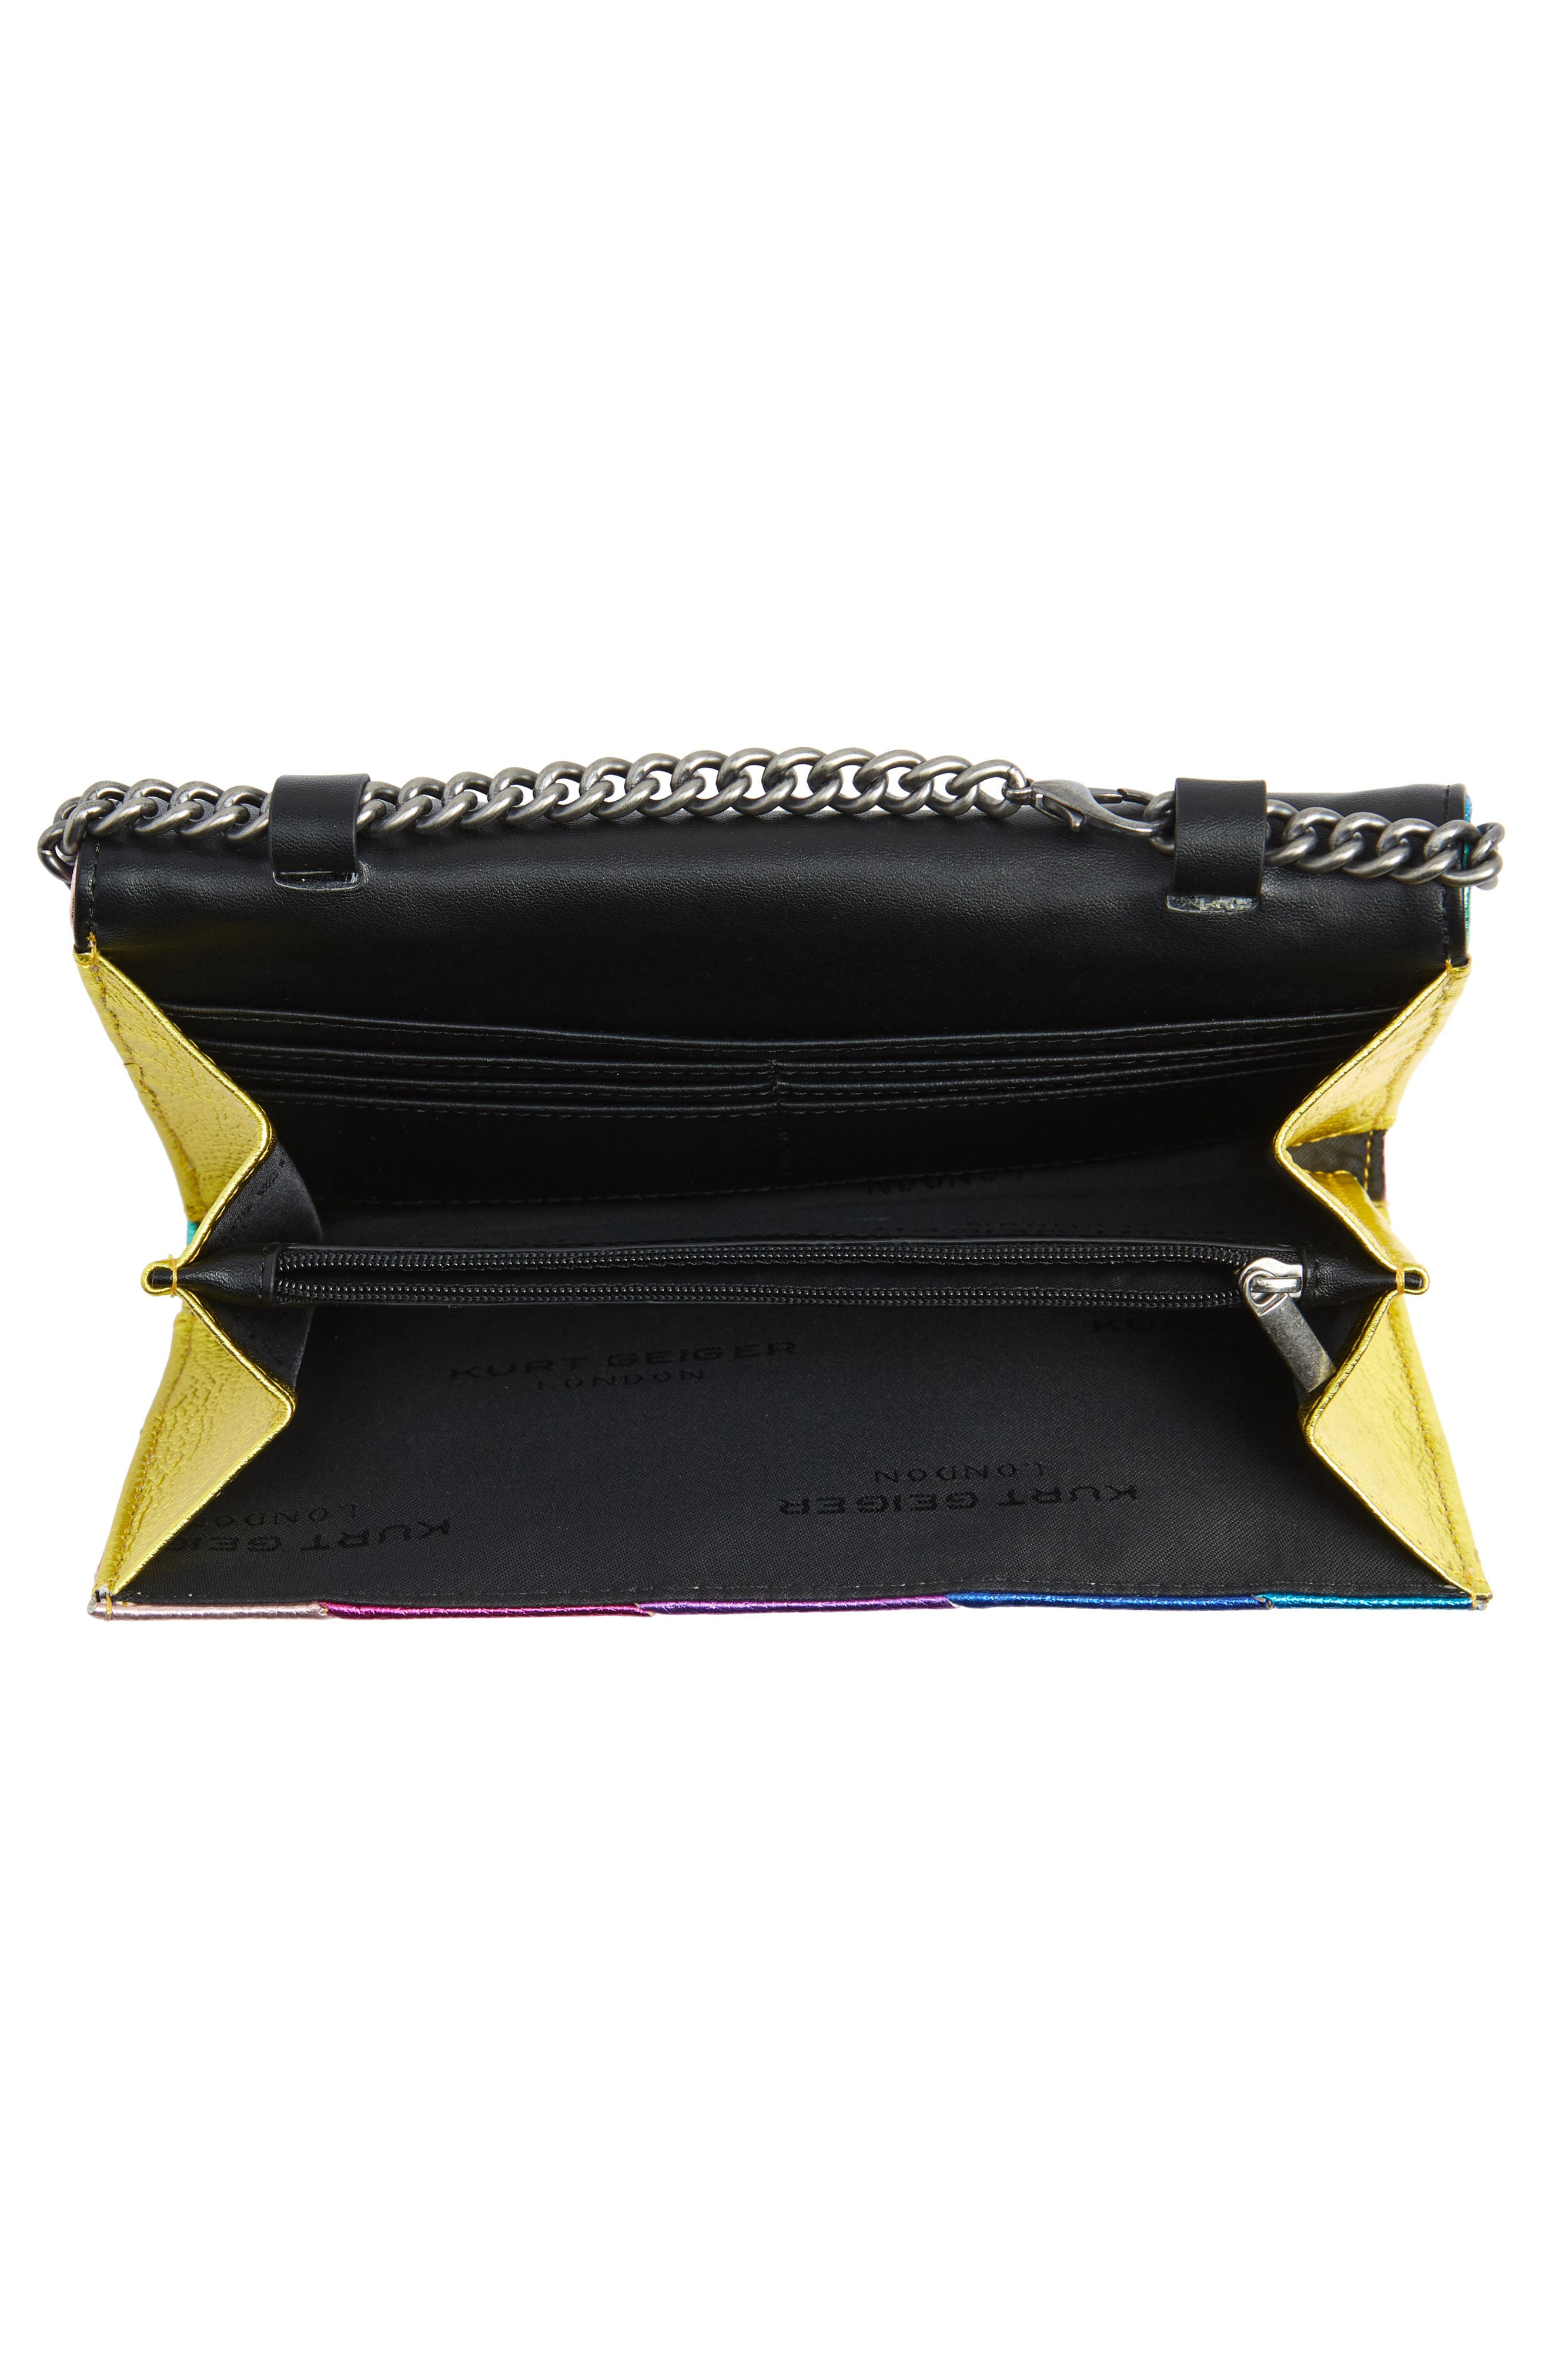 Stripe Leather Chain Wallet,                             Alternate thumbnail 4, color,                             MULTI/ OTHER